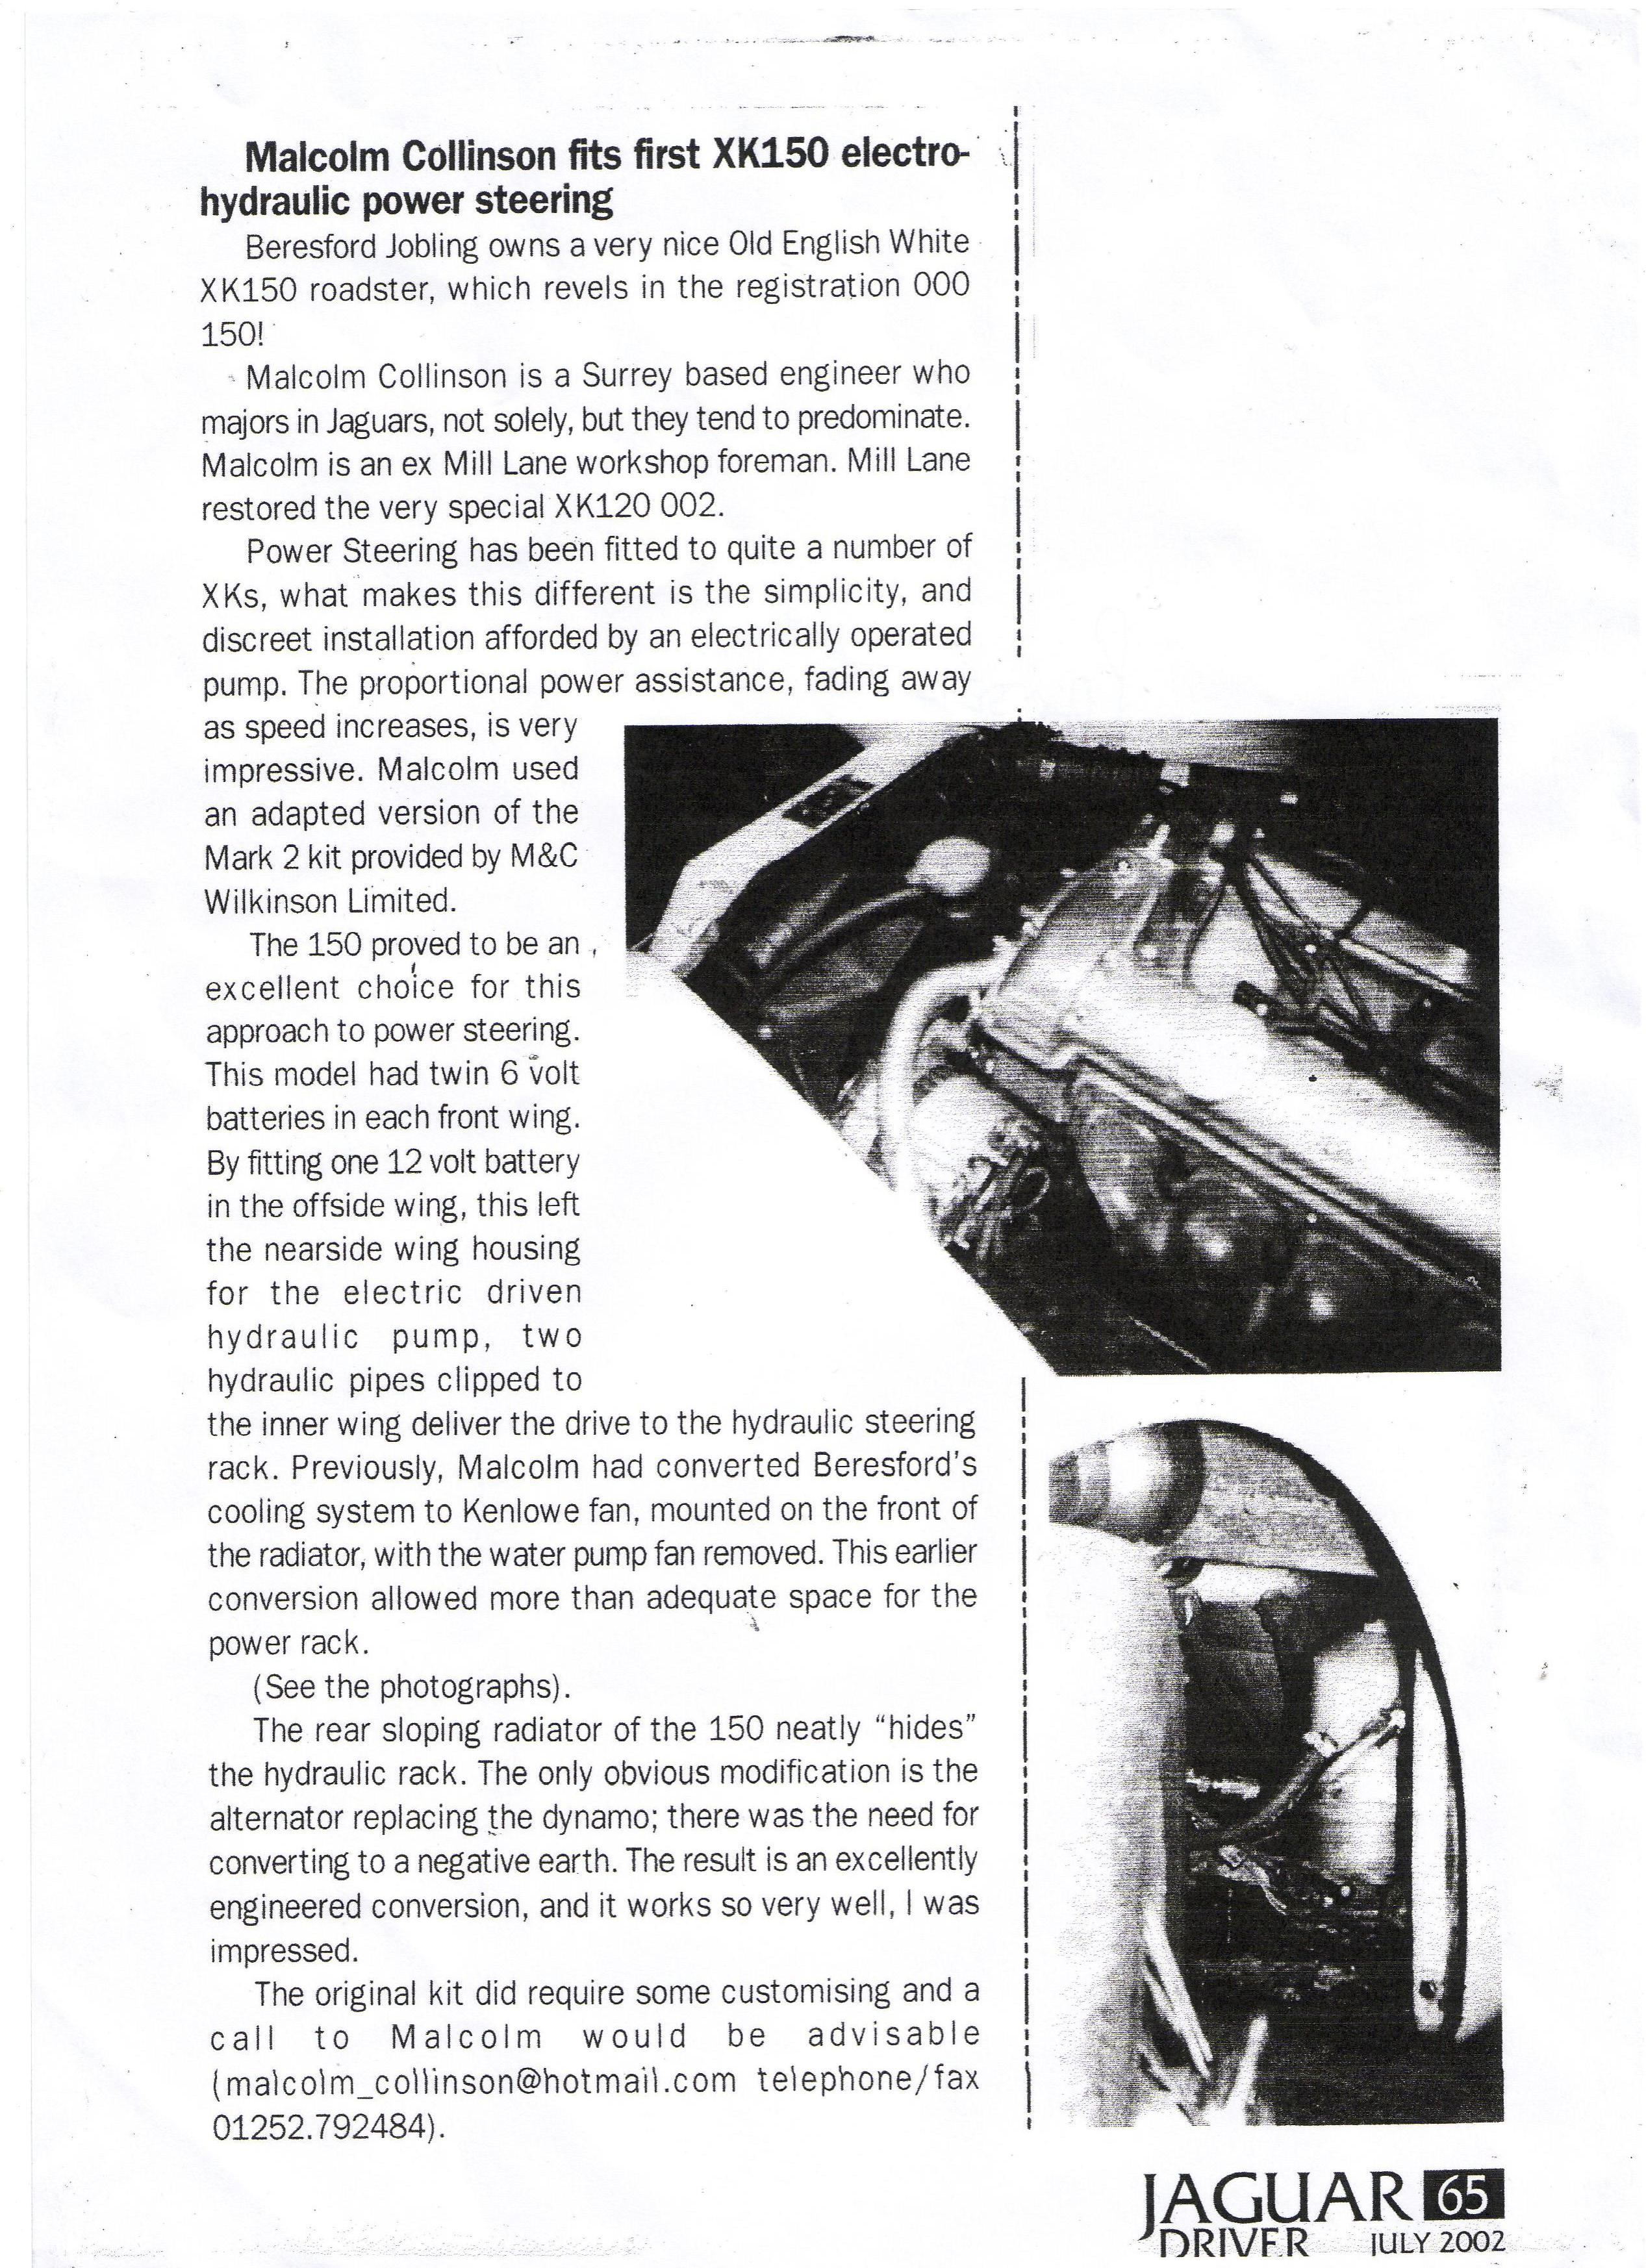 Jaguar Driver Magazine July 2002 - Malcolm Collinson fits first electrohydraulic power steering